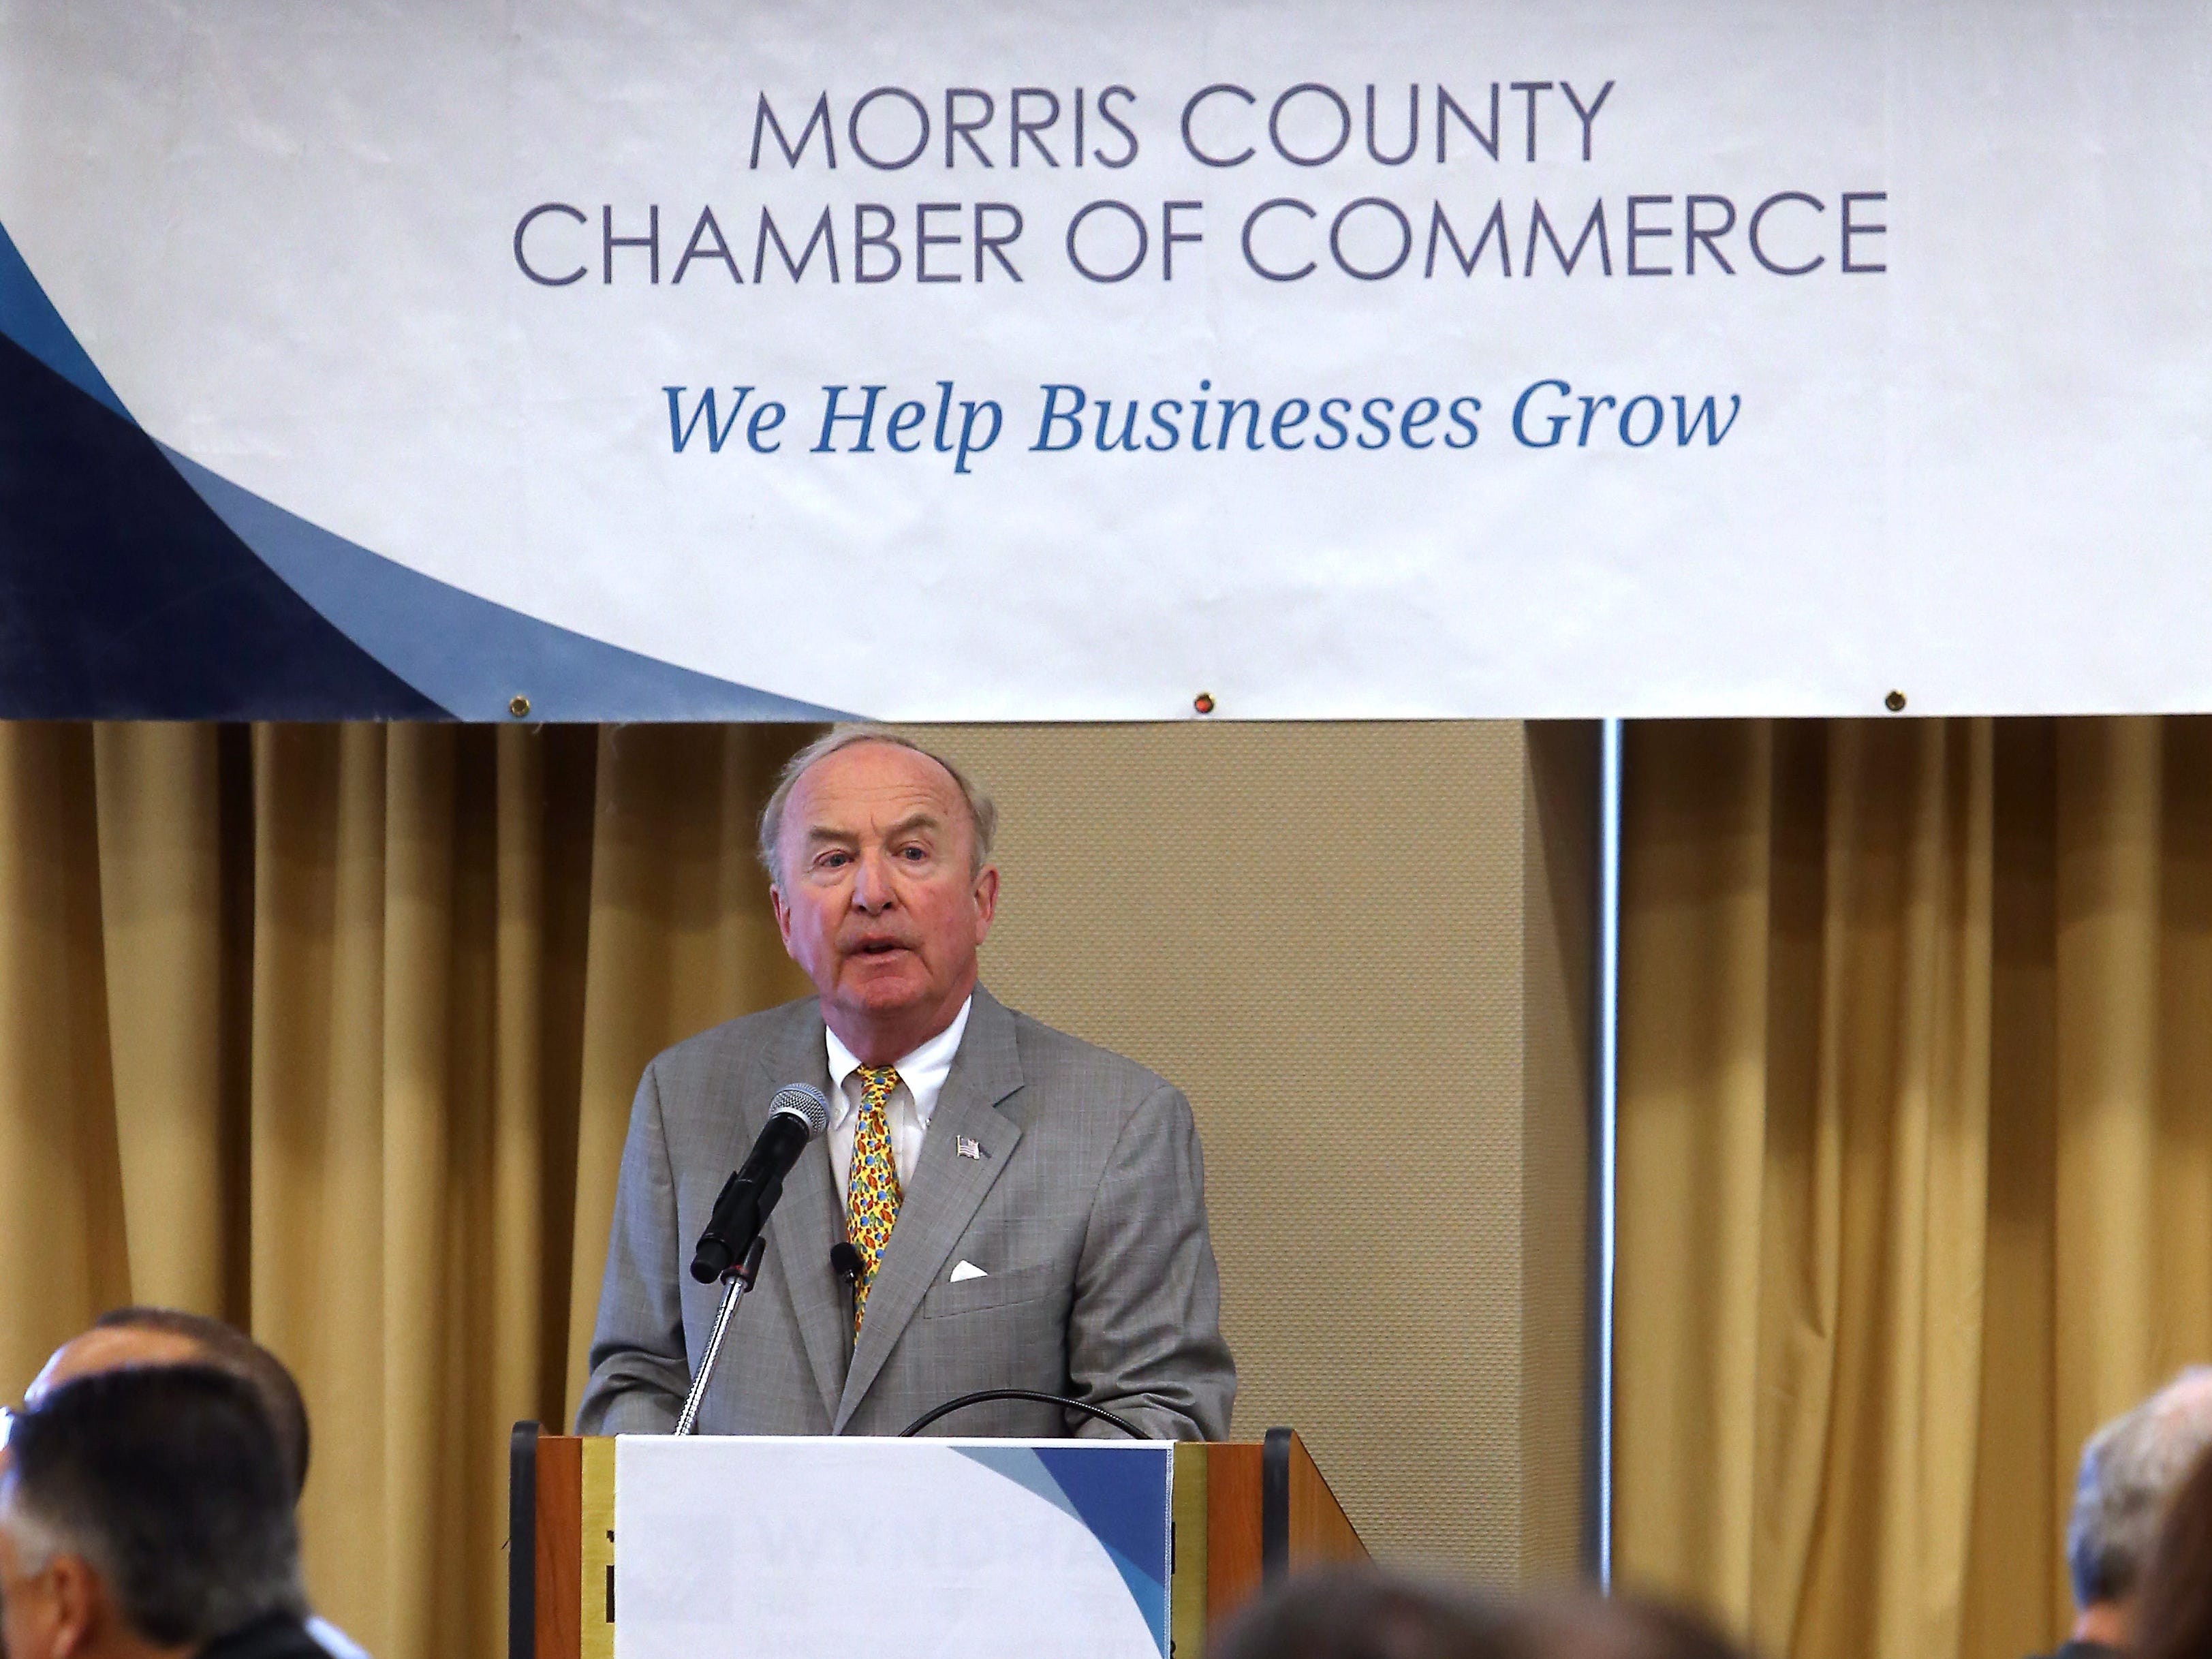 Congressman Rodney Frelinghuysen was the guest speaker during the Morris County Chamber of Commerce Washington Update Breakfast held at the Wyndham Hamilton Park Hotel and Conference Center in Florham Park. May 12, 2017, Florham Park, NJ